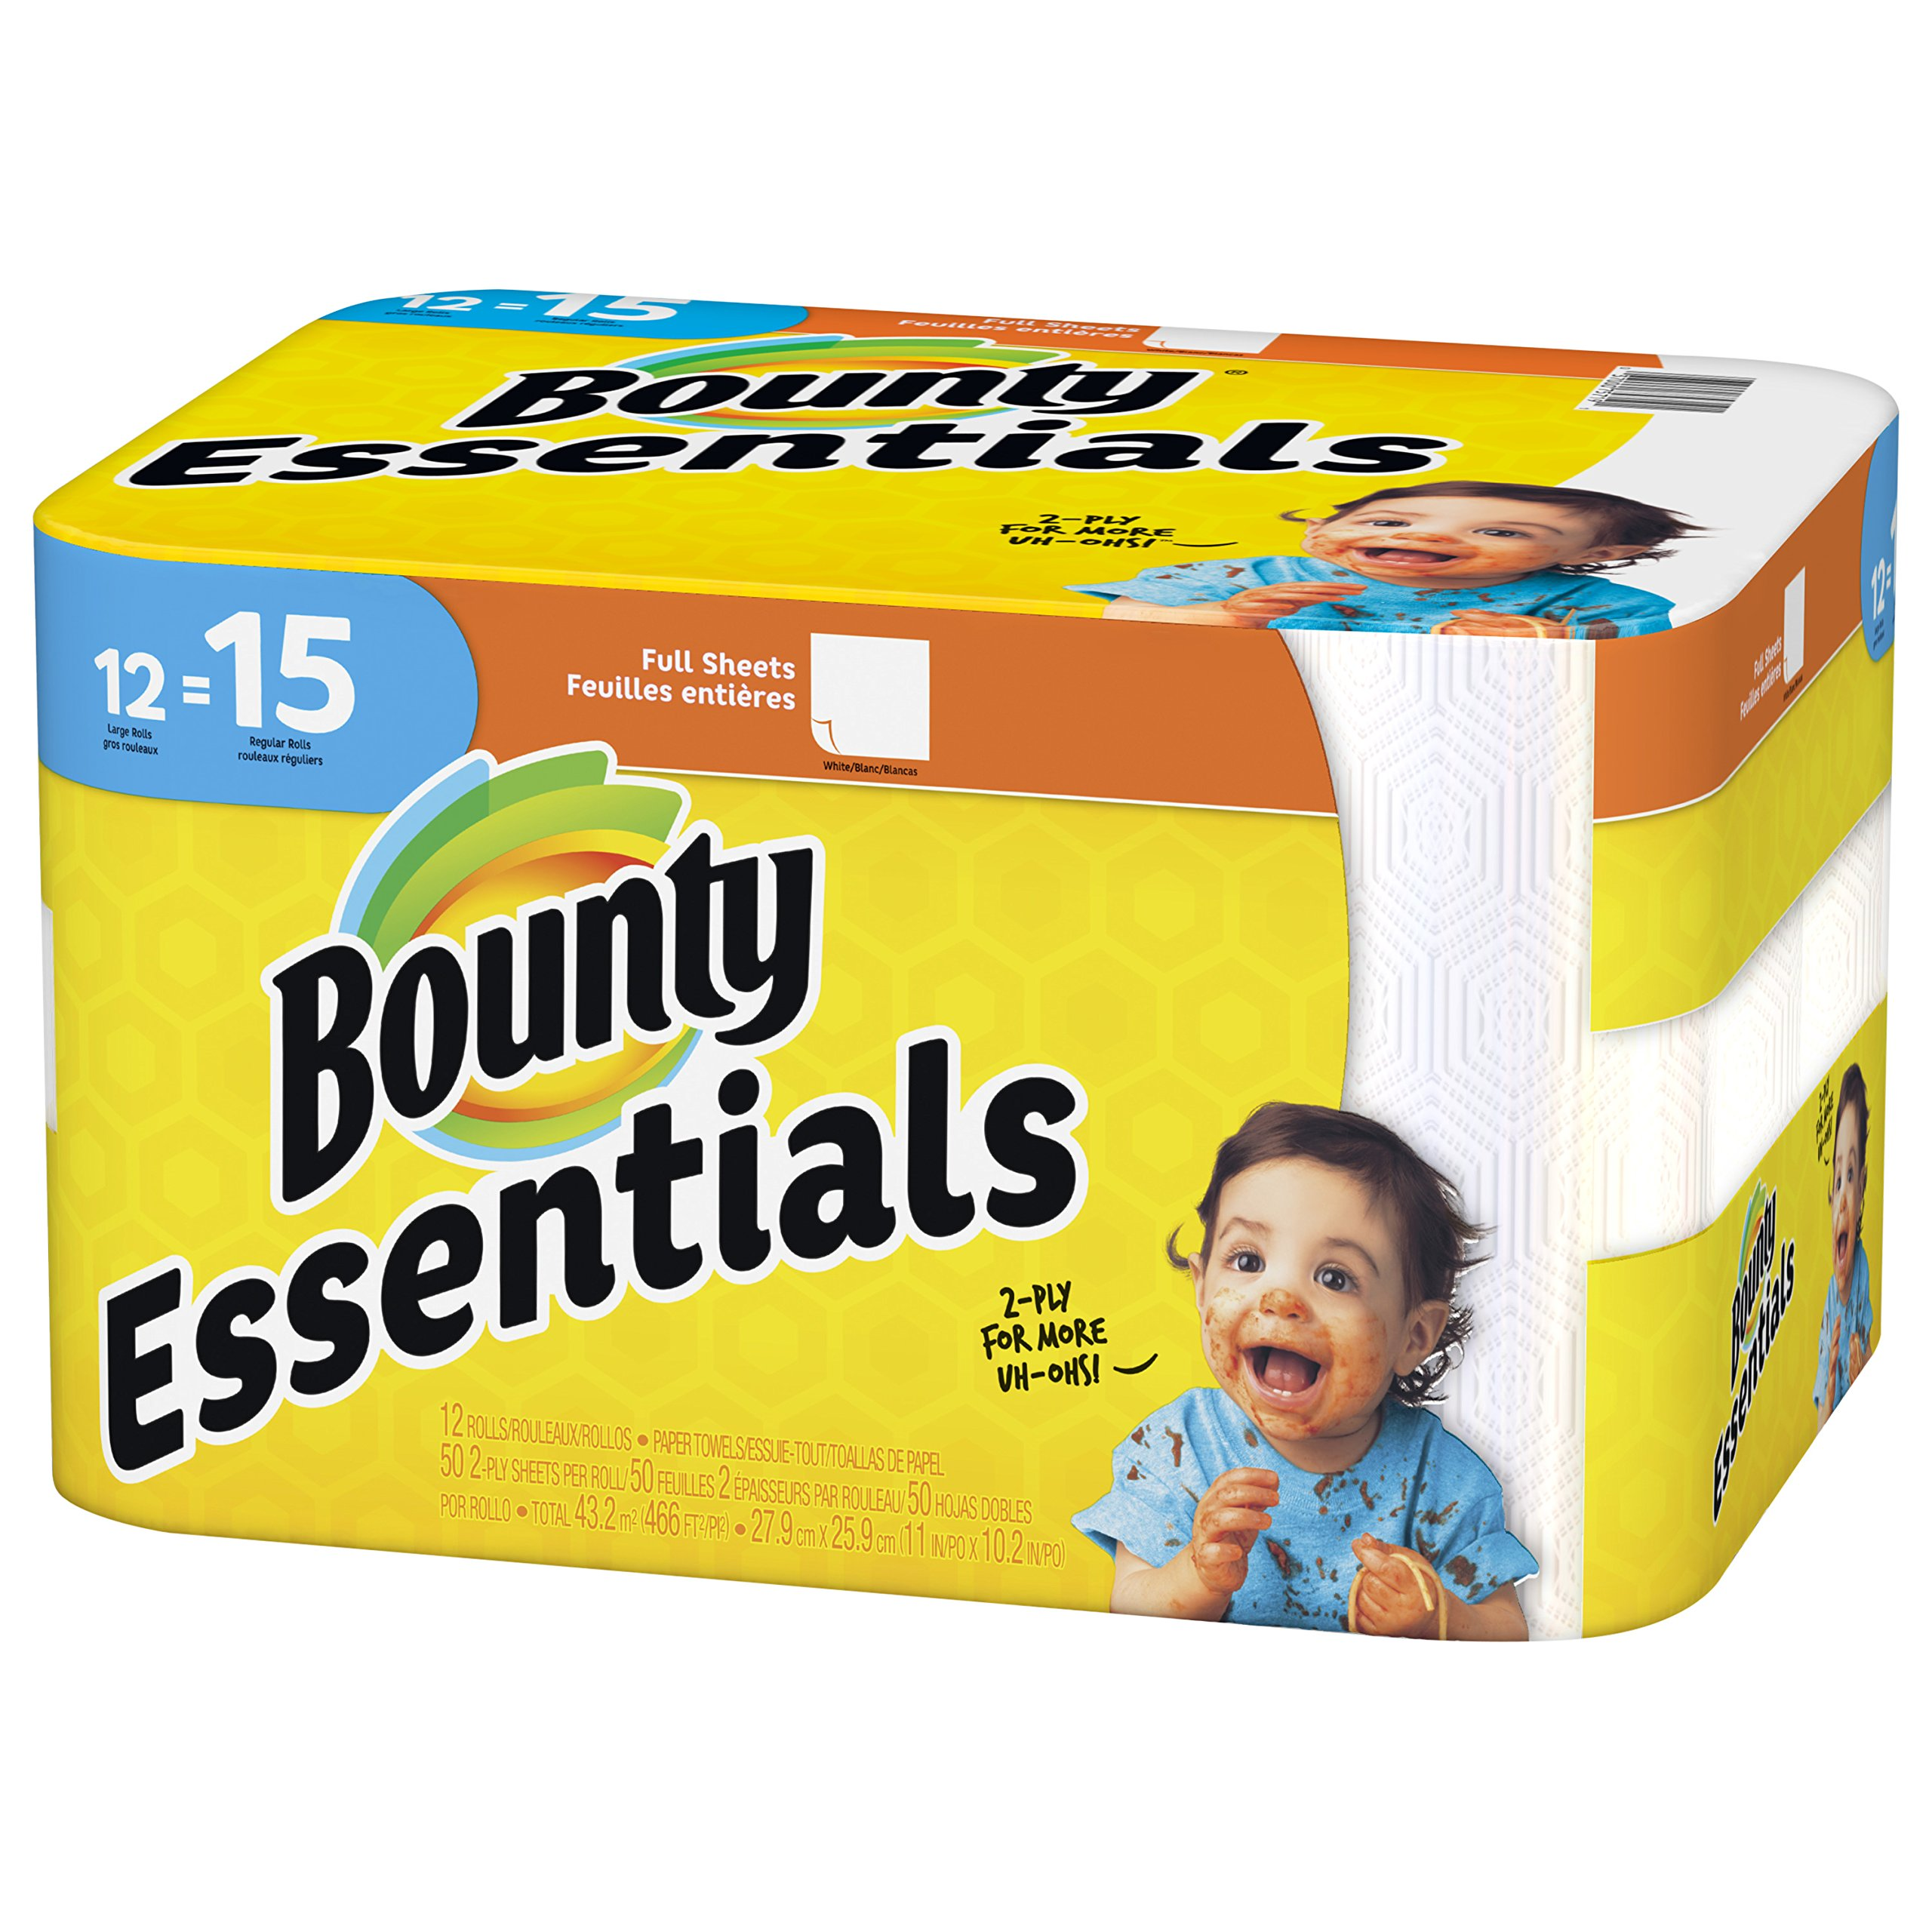 Bounty Essentials Full Sheet Paper Towels, 24 Large Rolls by Bounty (Image #2)